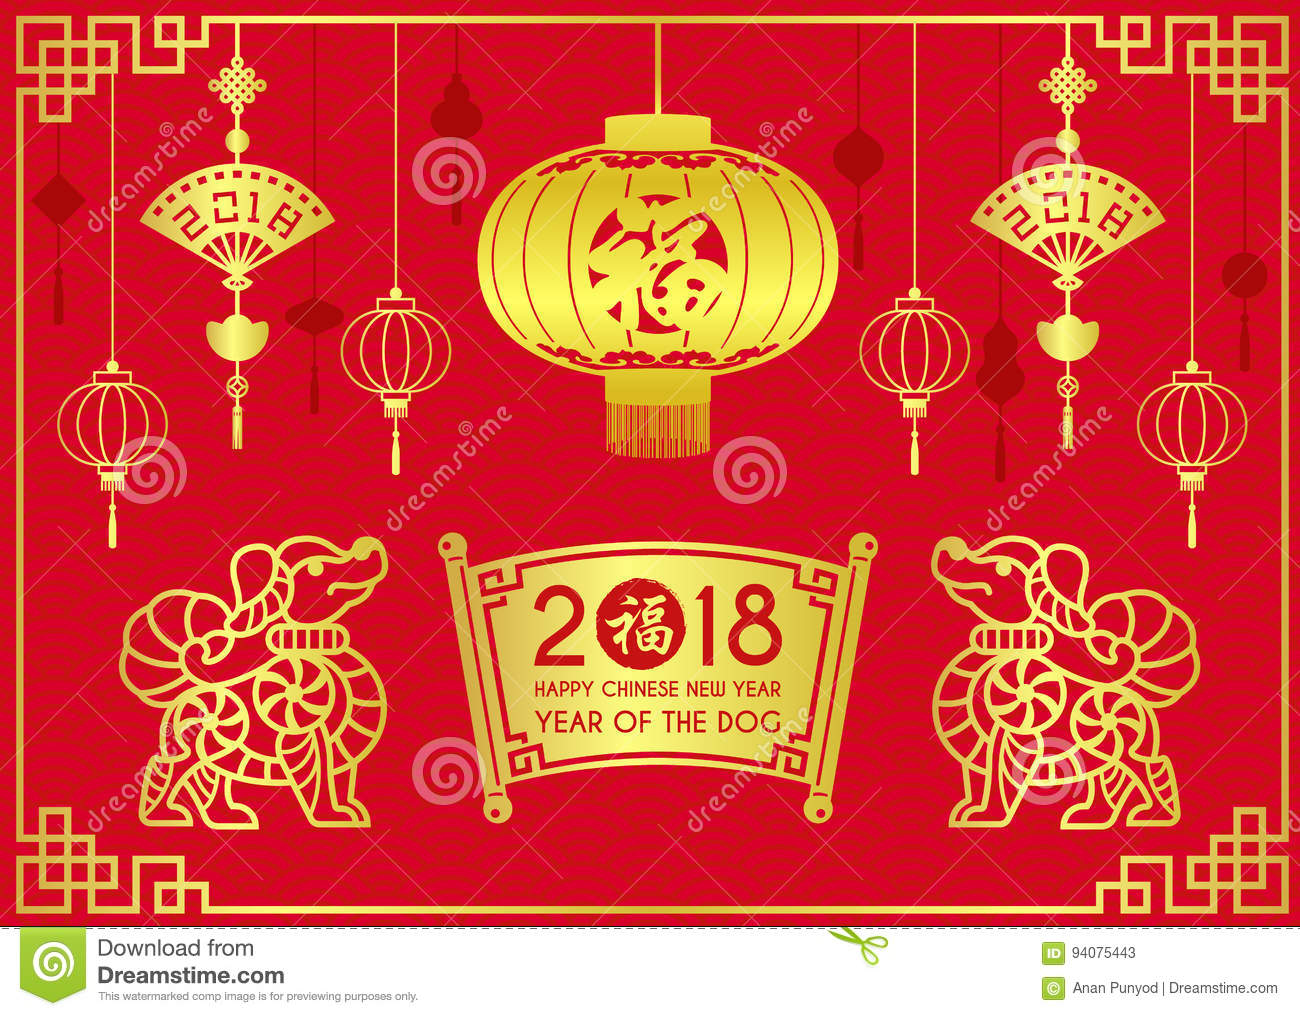 Happy chinese new year card 2018 with gold lanterns hang and dog happy chinese new year card 2018 with gold lanterns hang and dog and fan chinese word mean good fortune vector design kristyandbryce Choice Image